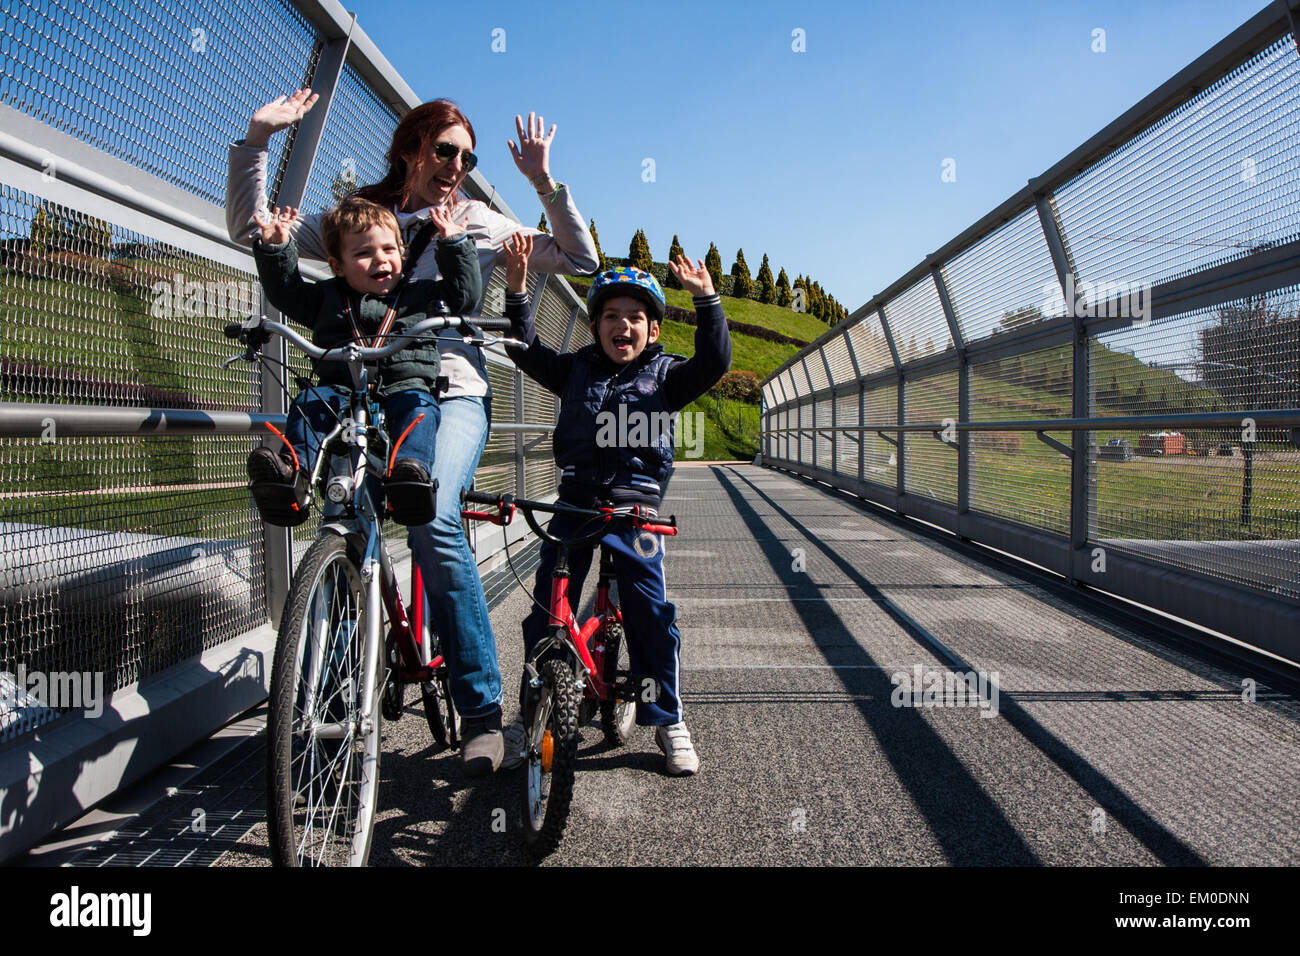 Modern steel cycle bridge that connects the city park Stock Photo